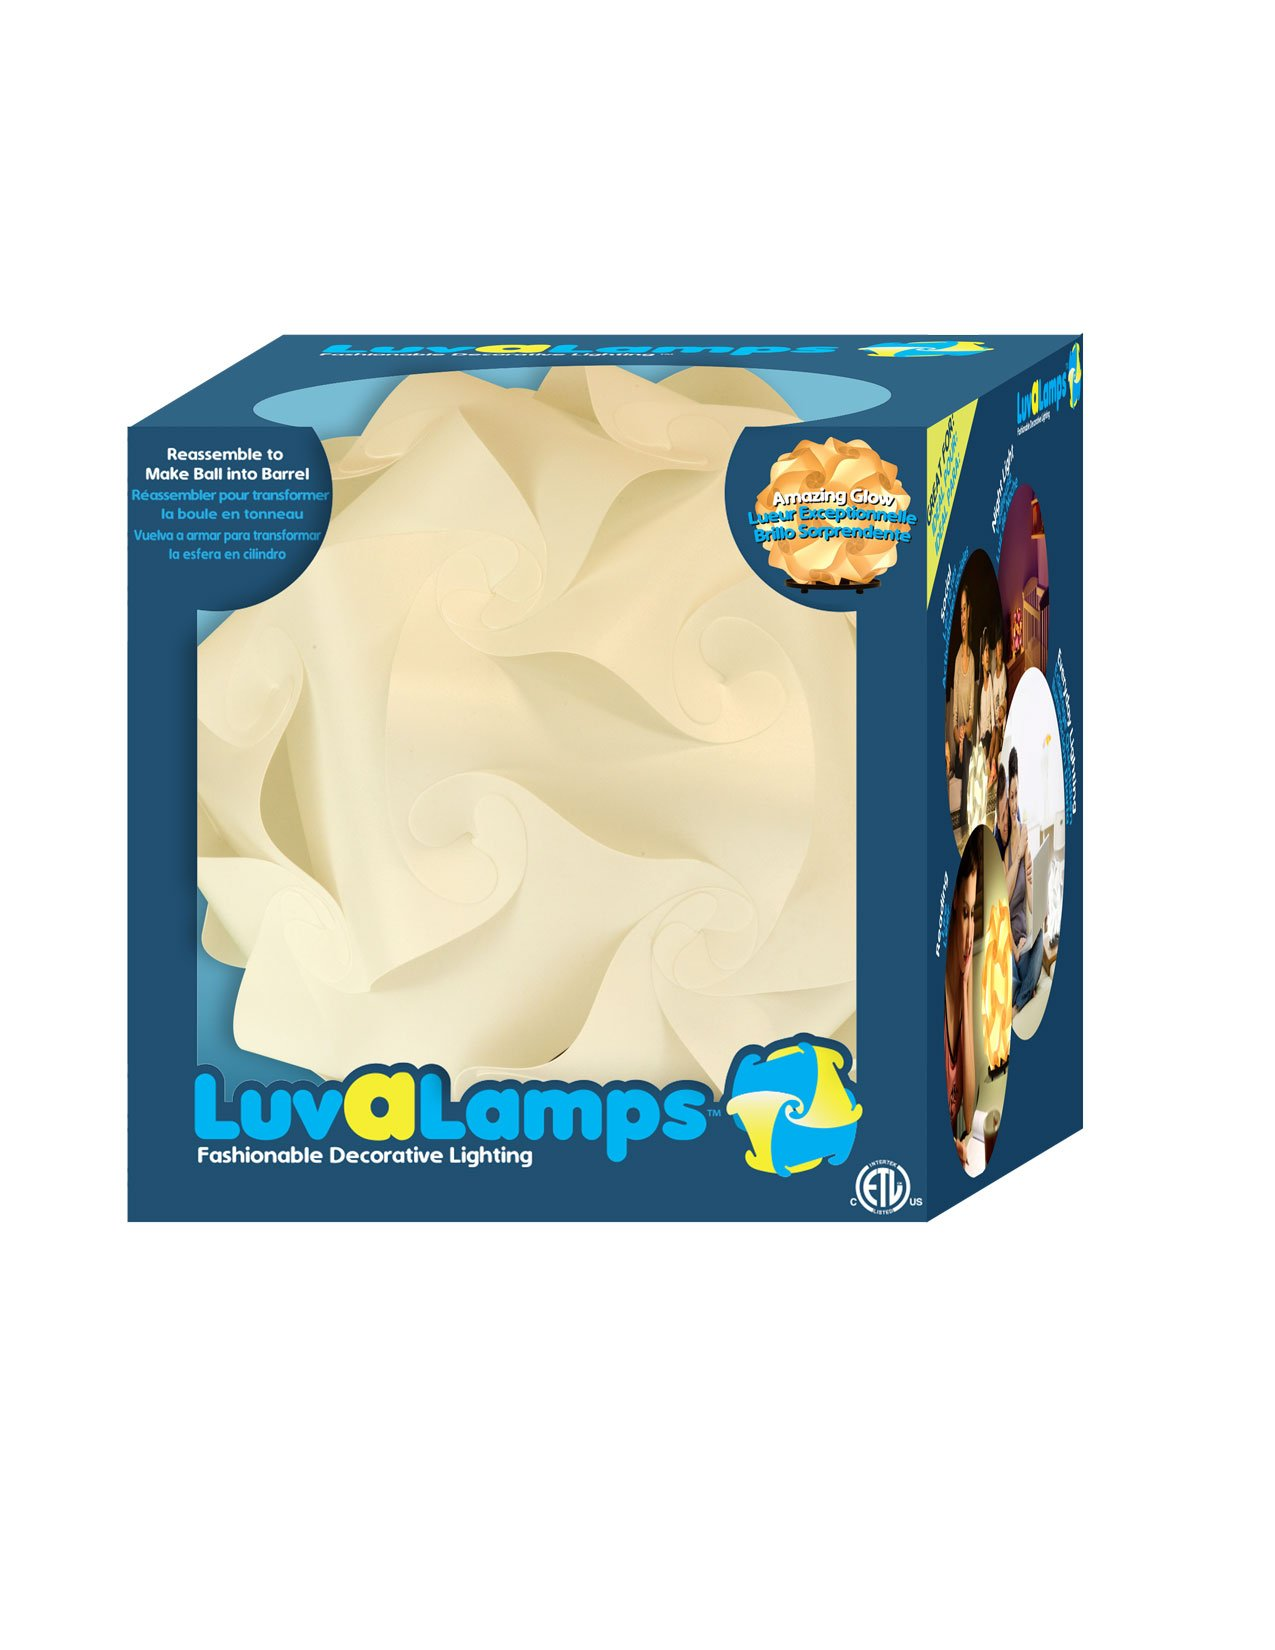 LuvaLamps POI90300 Lamp with Stand, 11.38'' x 11.38'' x 11.38'', White